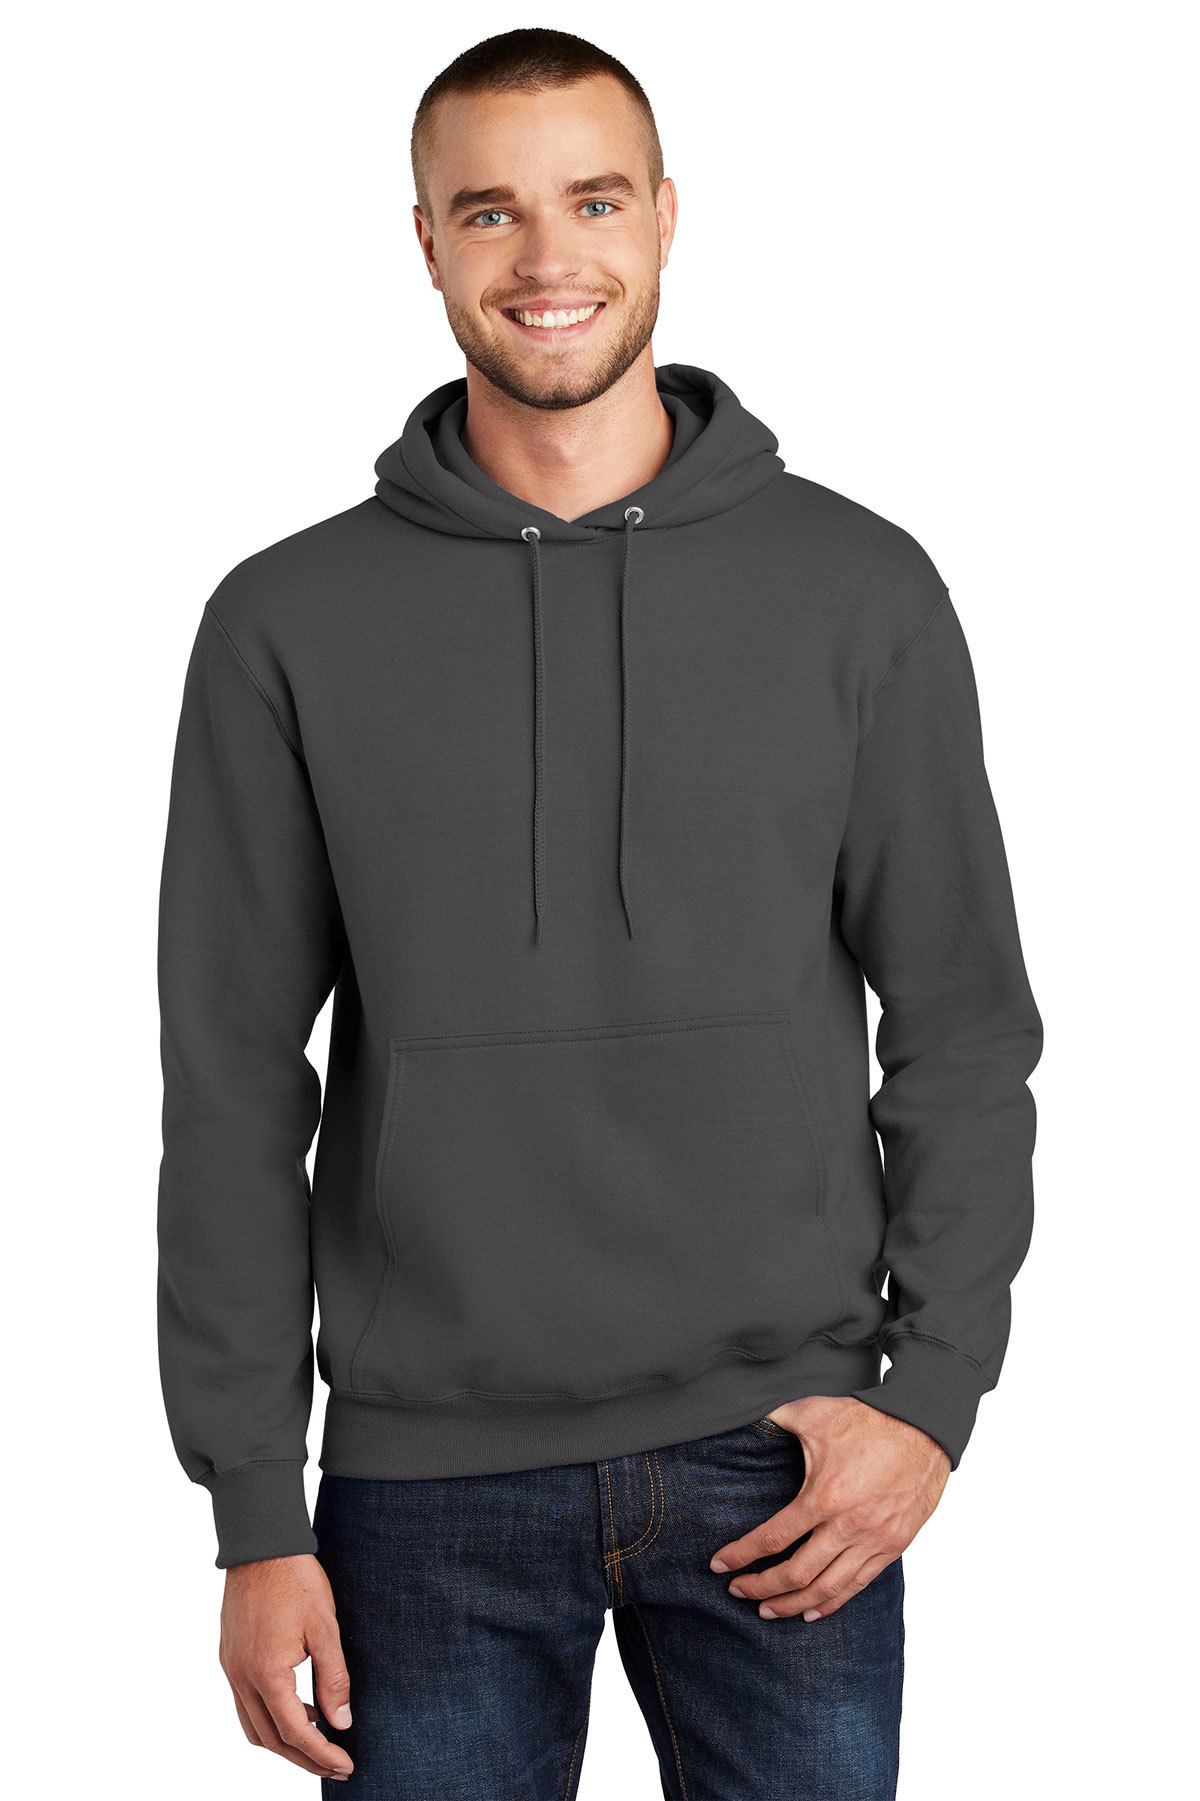 PC90H-Ash Port /& Company-Pullover Hooded Sweatshirt